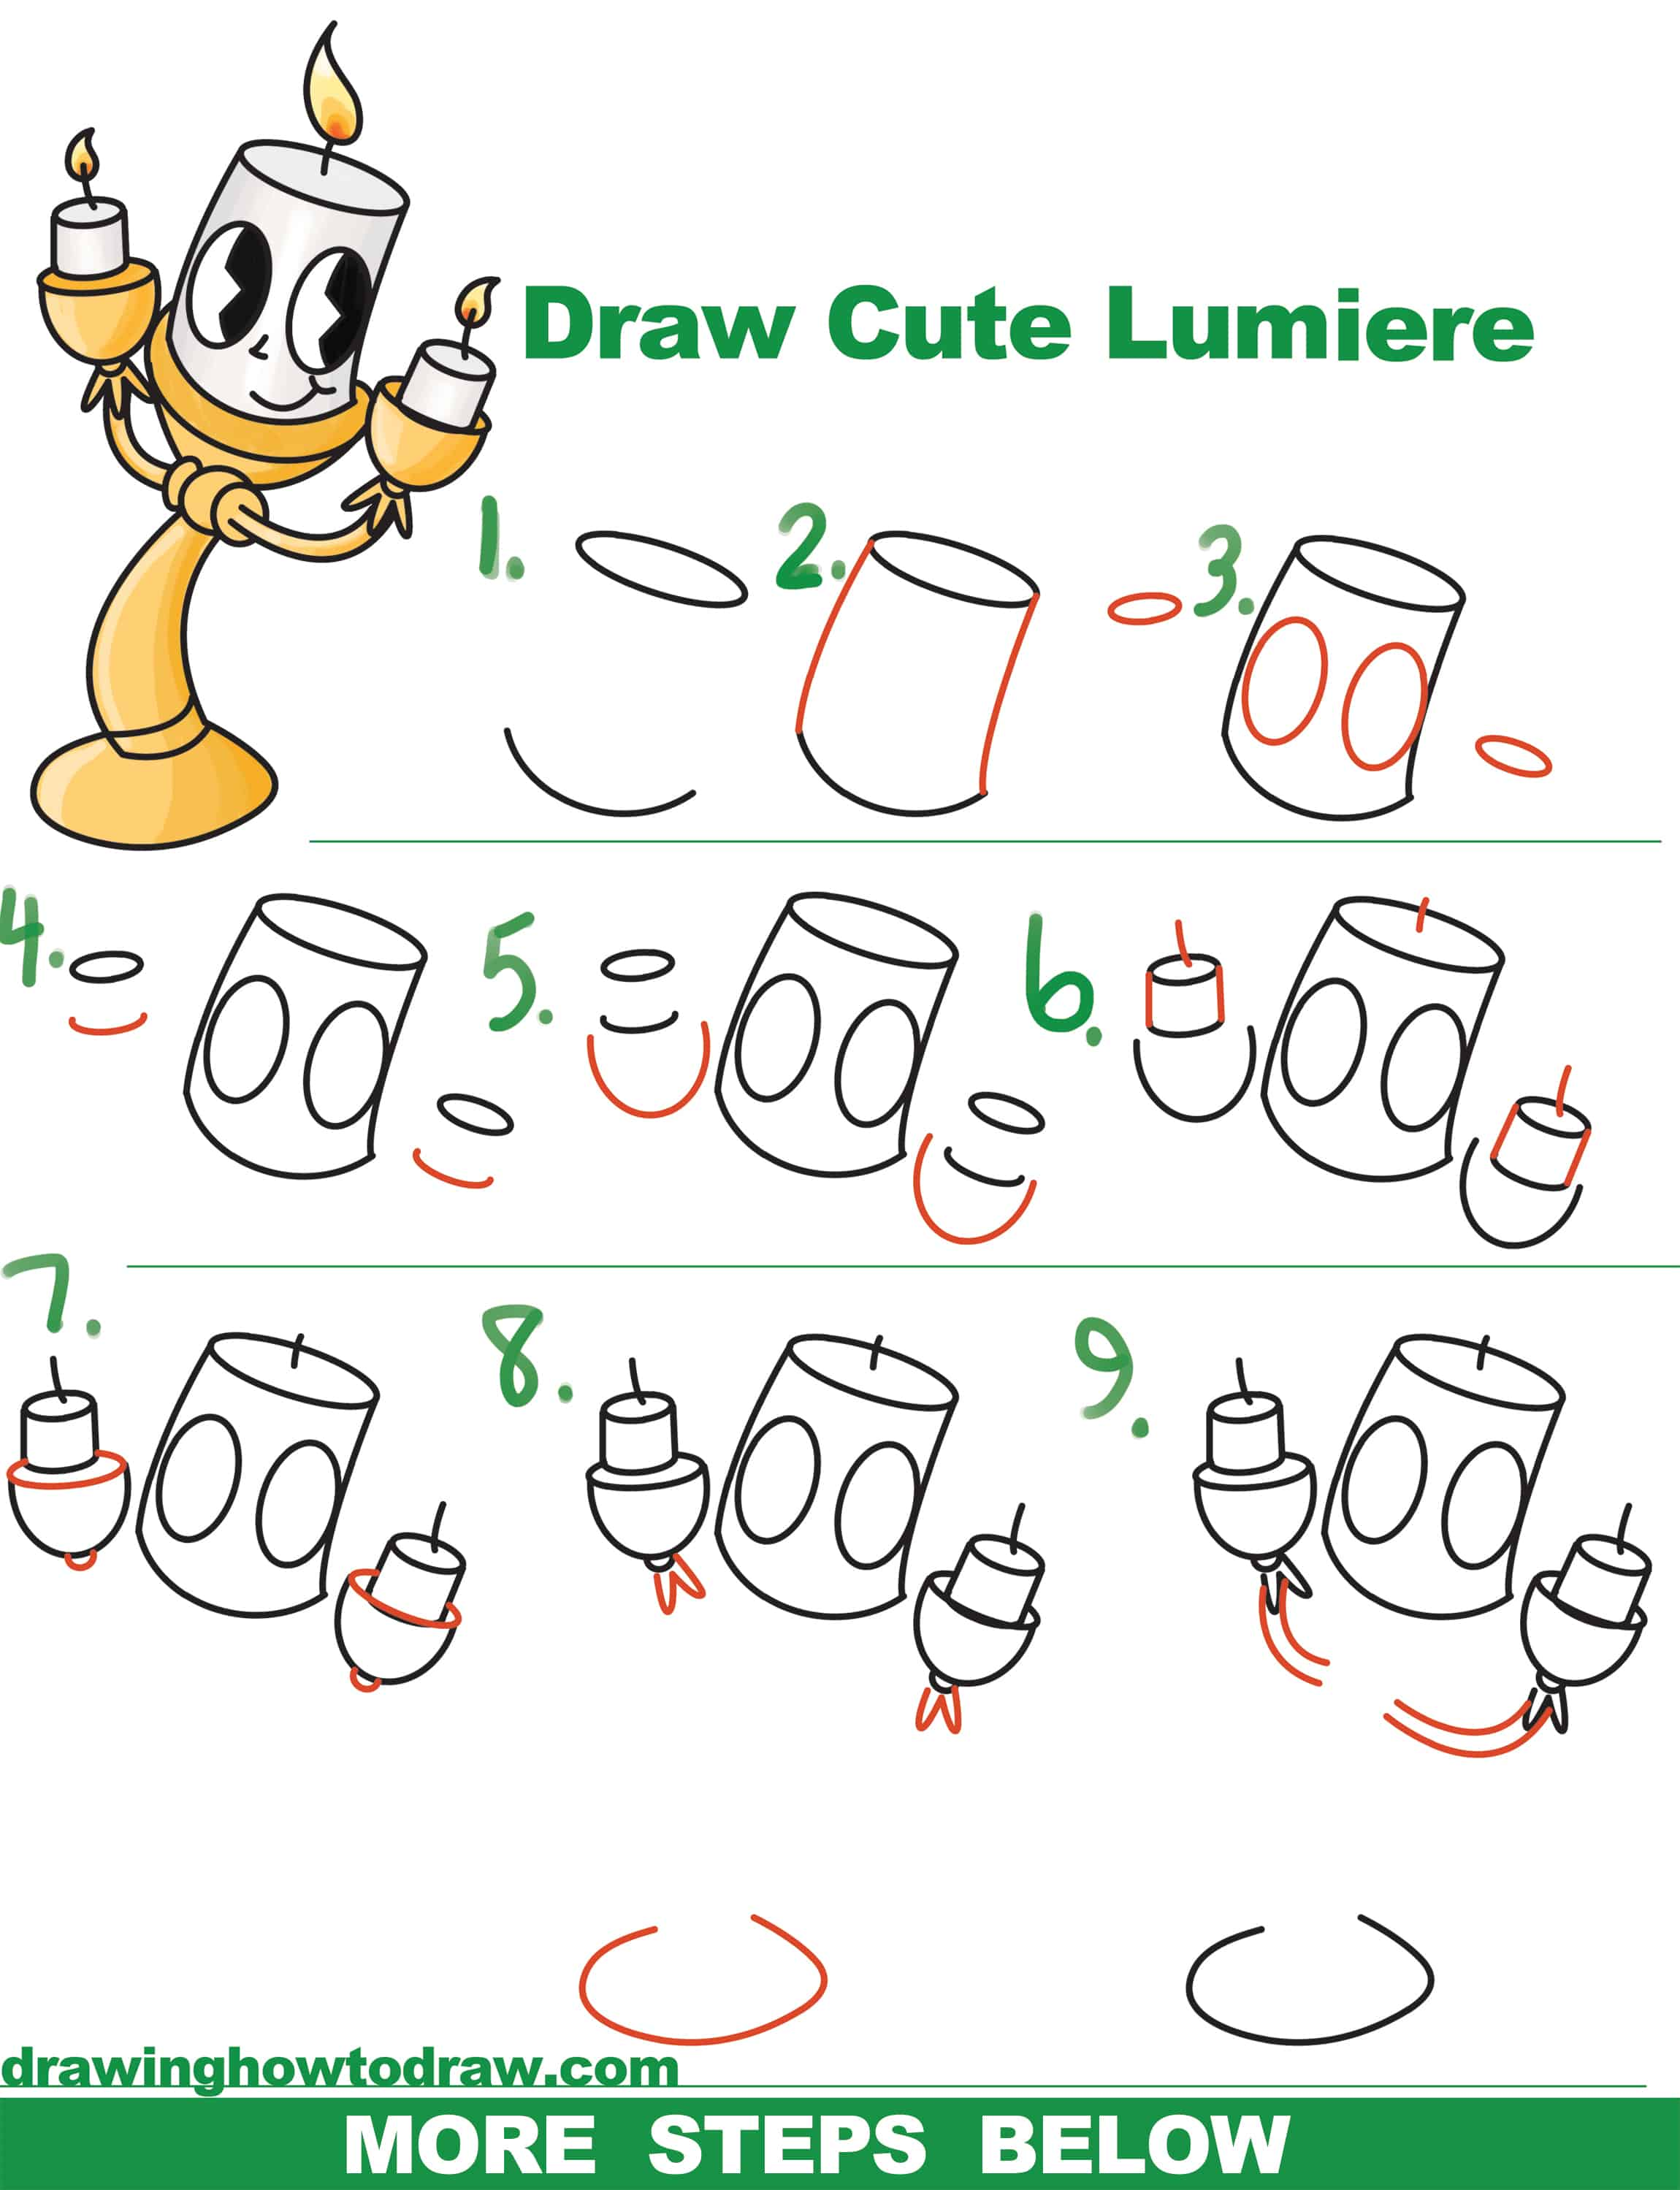 How to draw cute lumiere